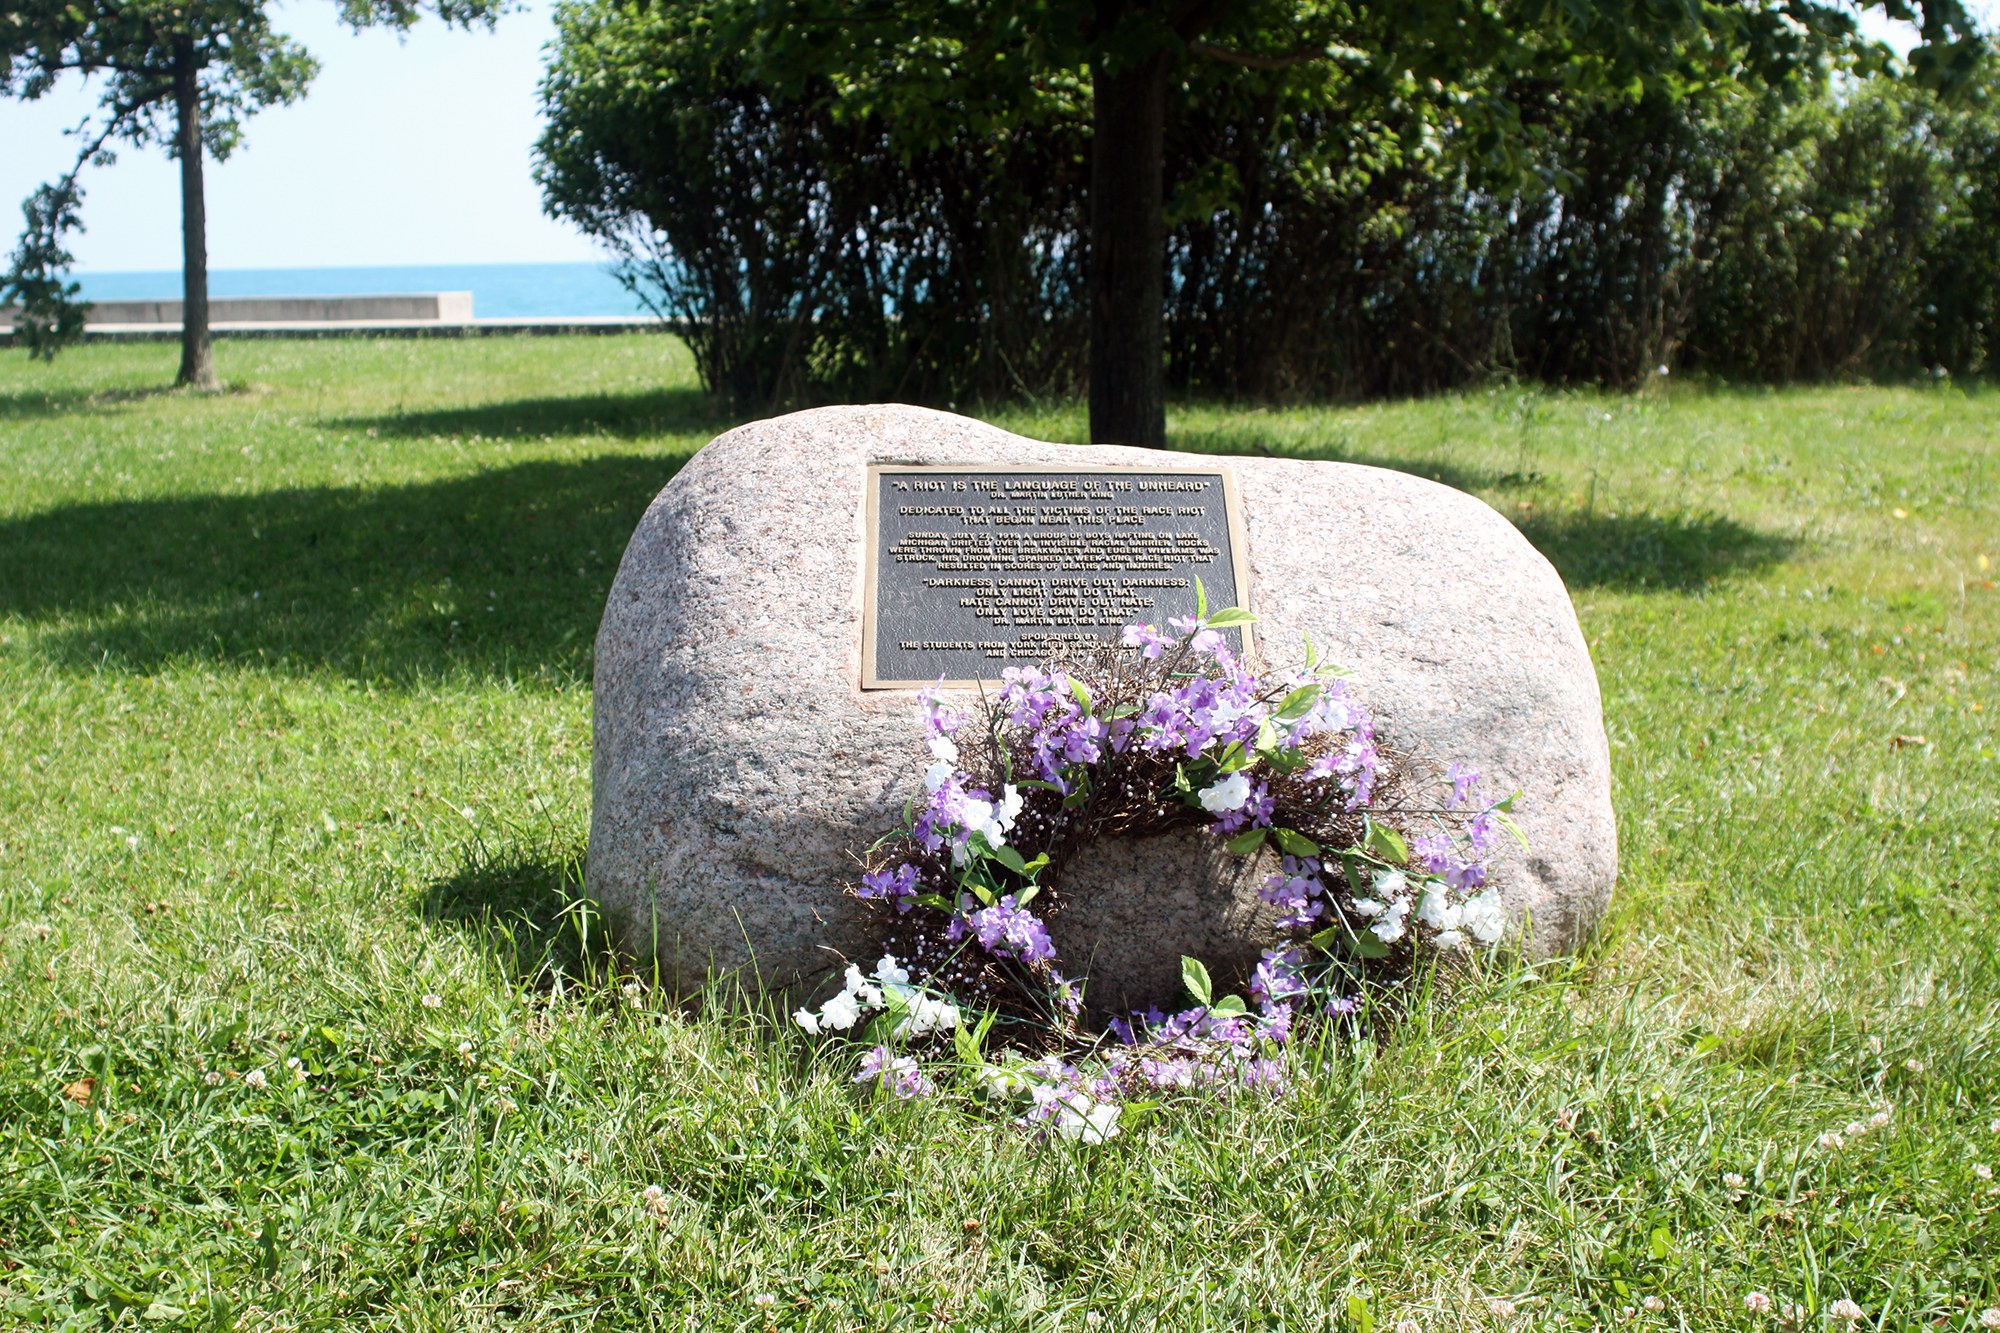 Suburban high school students were behind the plaque at 29th Street on the lakefront near where the race riots' first victim, Eugene Williams, was killed. It is currently the only memorial commemorating the violent events.